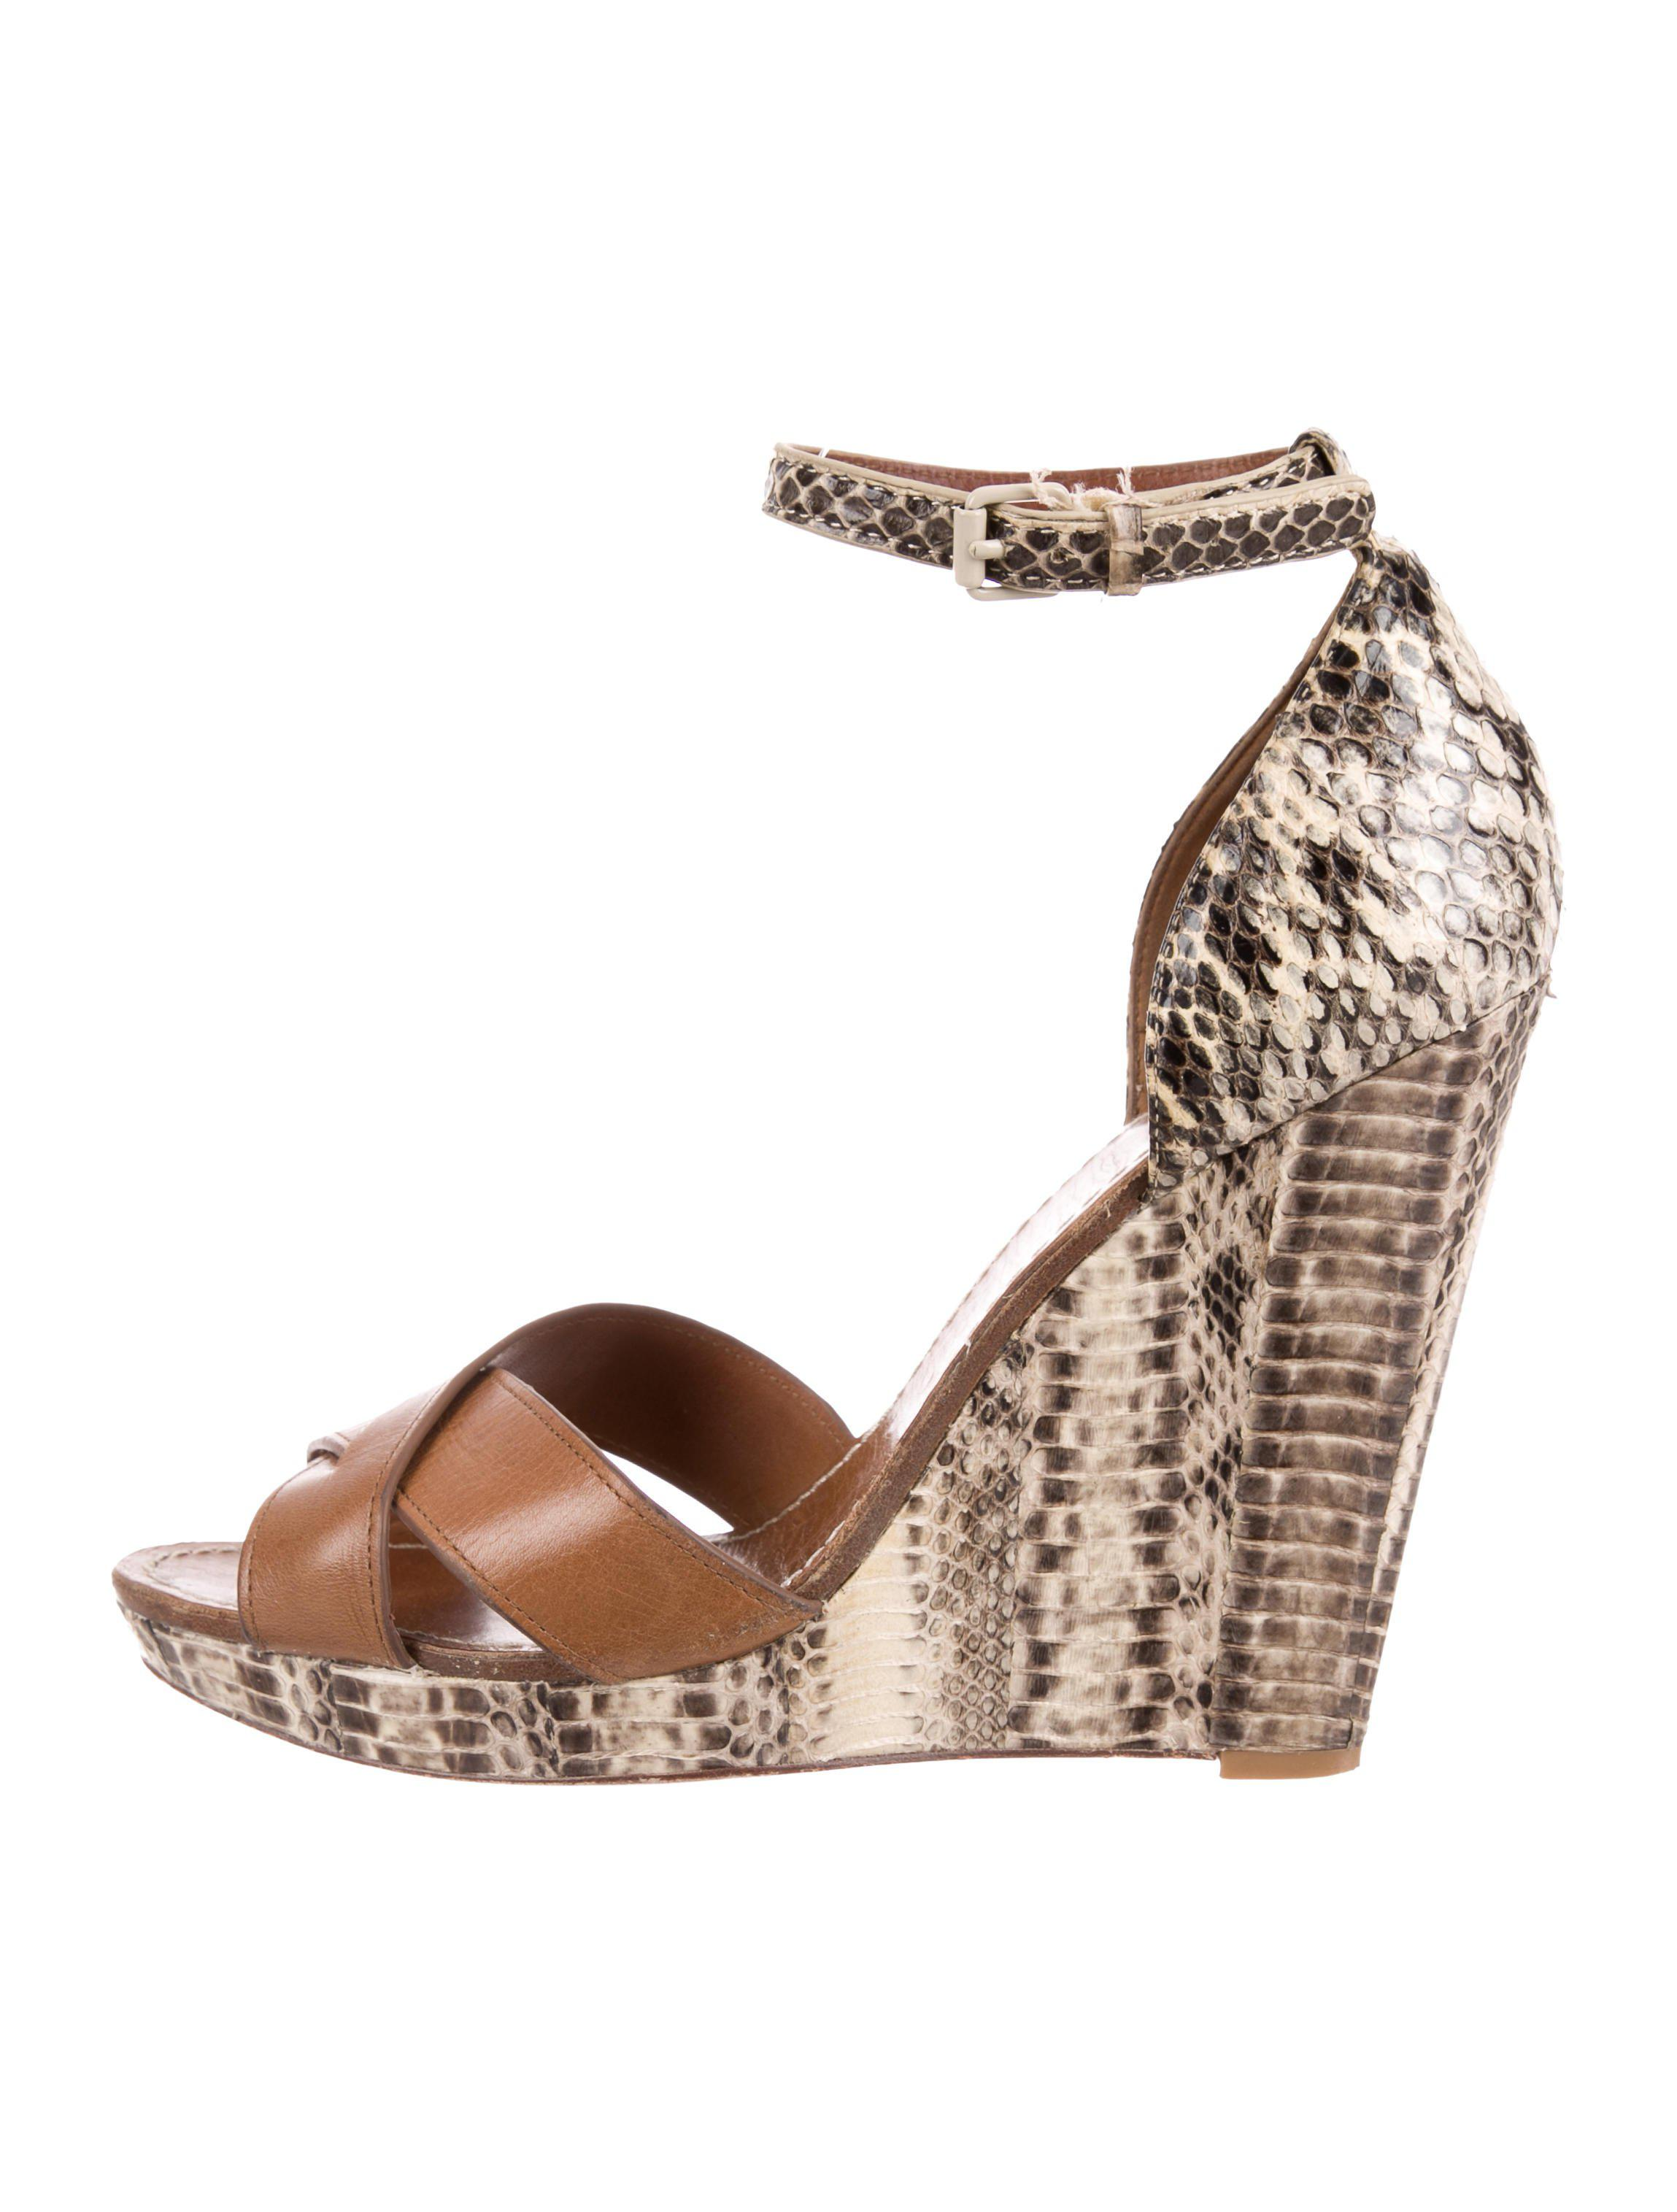 a2c4b874885a Lyst - Tory Burch Embossed Wedge Sandals in Brown